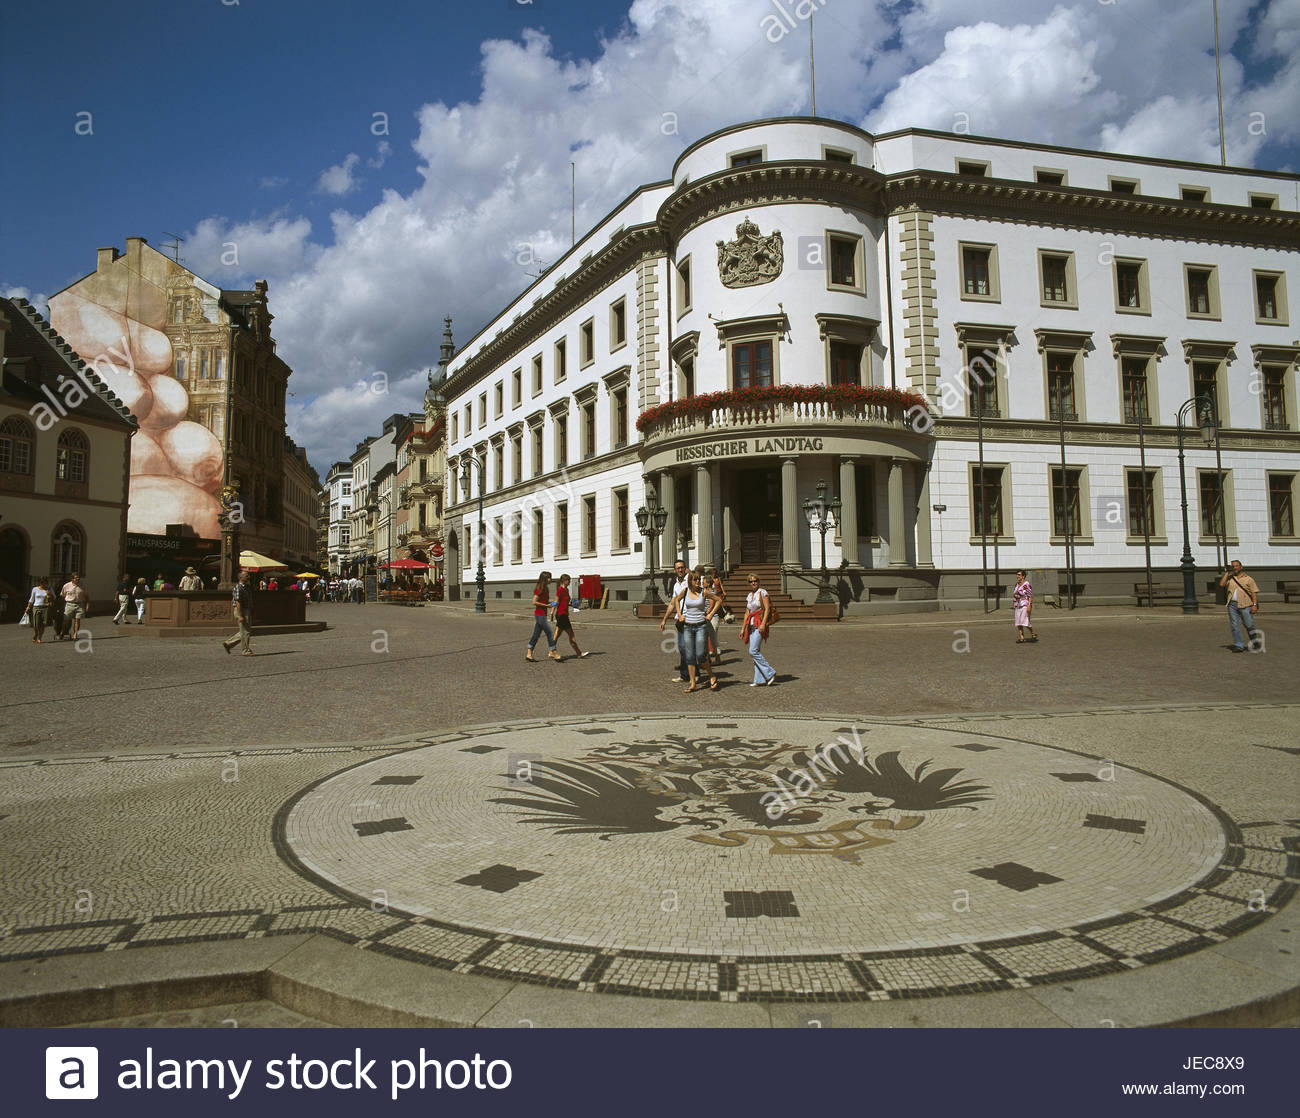 Stadtschloss The Fairy-Tale Road, Mosaic Castle Stock Photos & Mosaic Castle Stock Images - Alamy